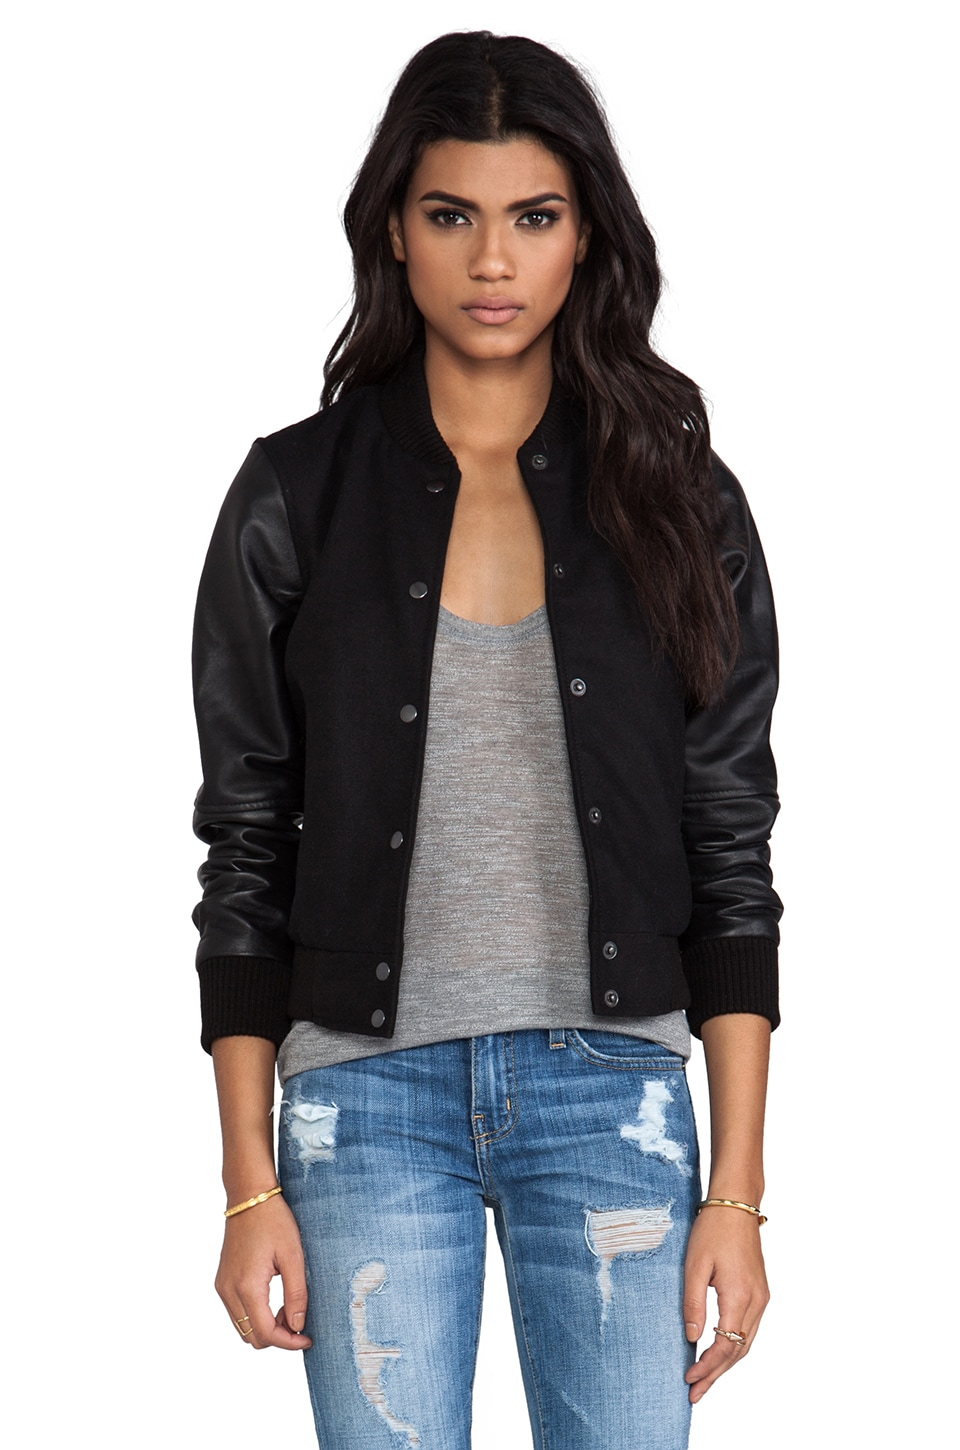 Viparo Acanthia Leather Sleeve Varsity Jacket in Black